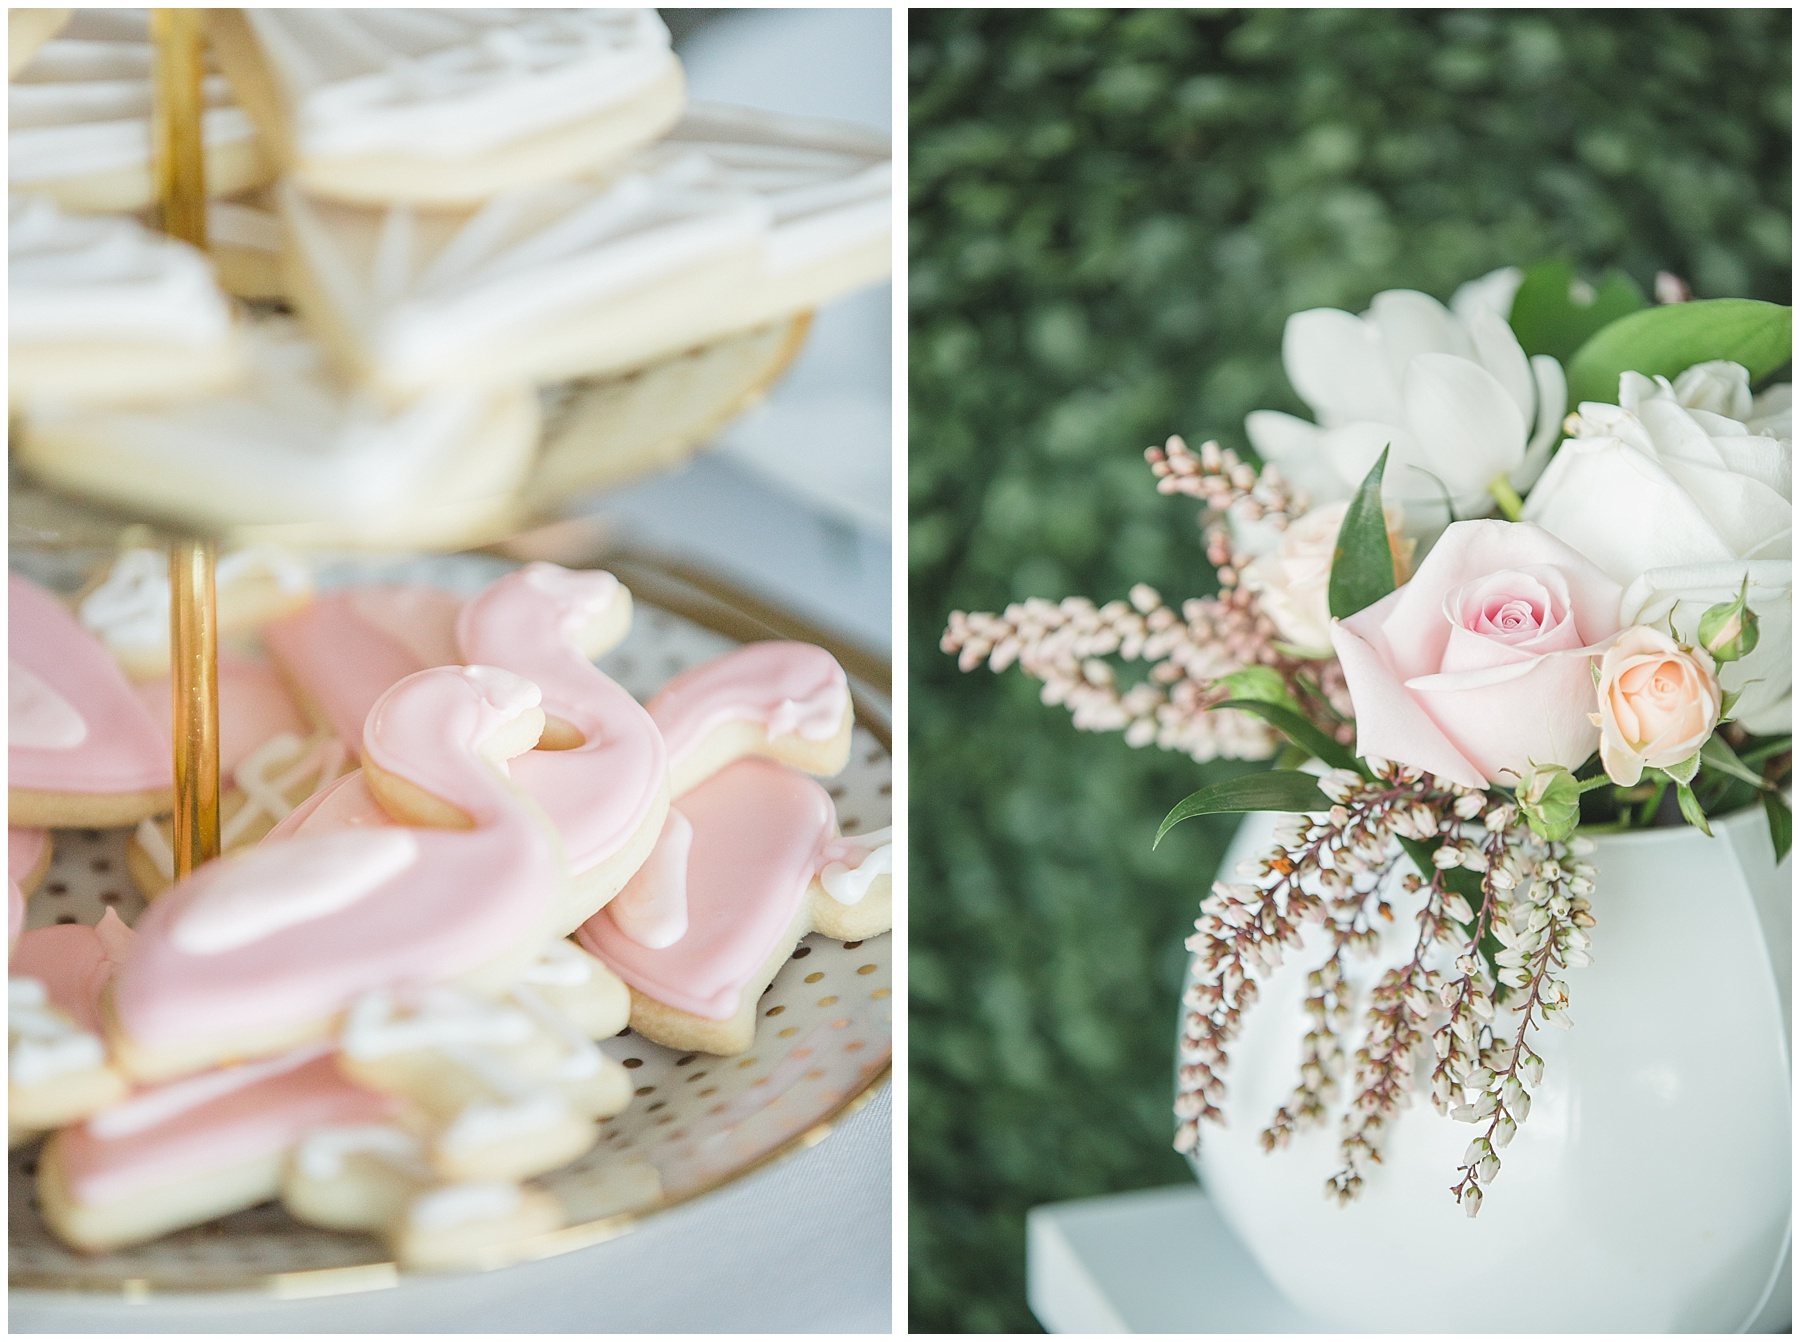 flamingo cookies and flower decorate this bridal shower